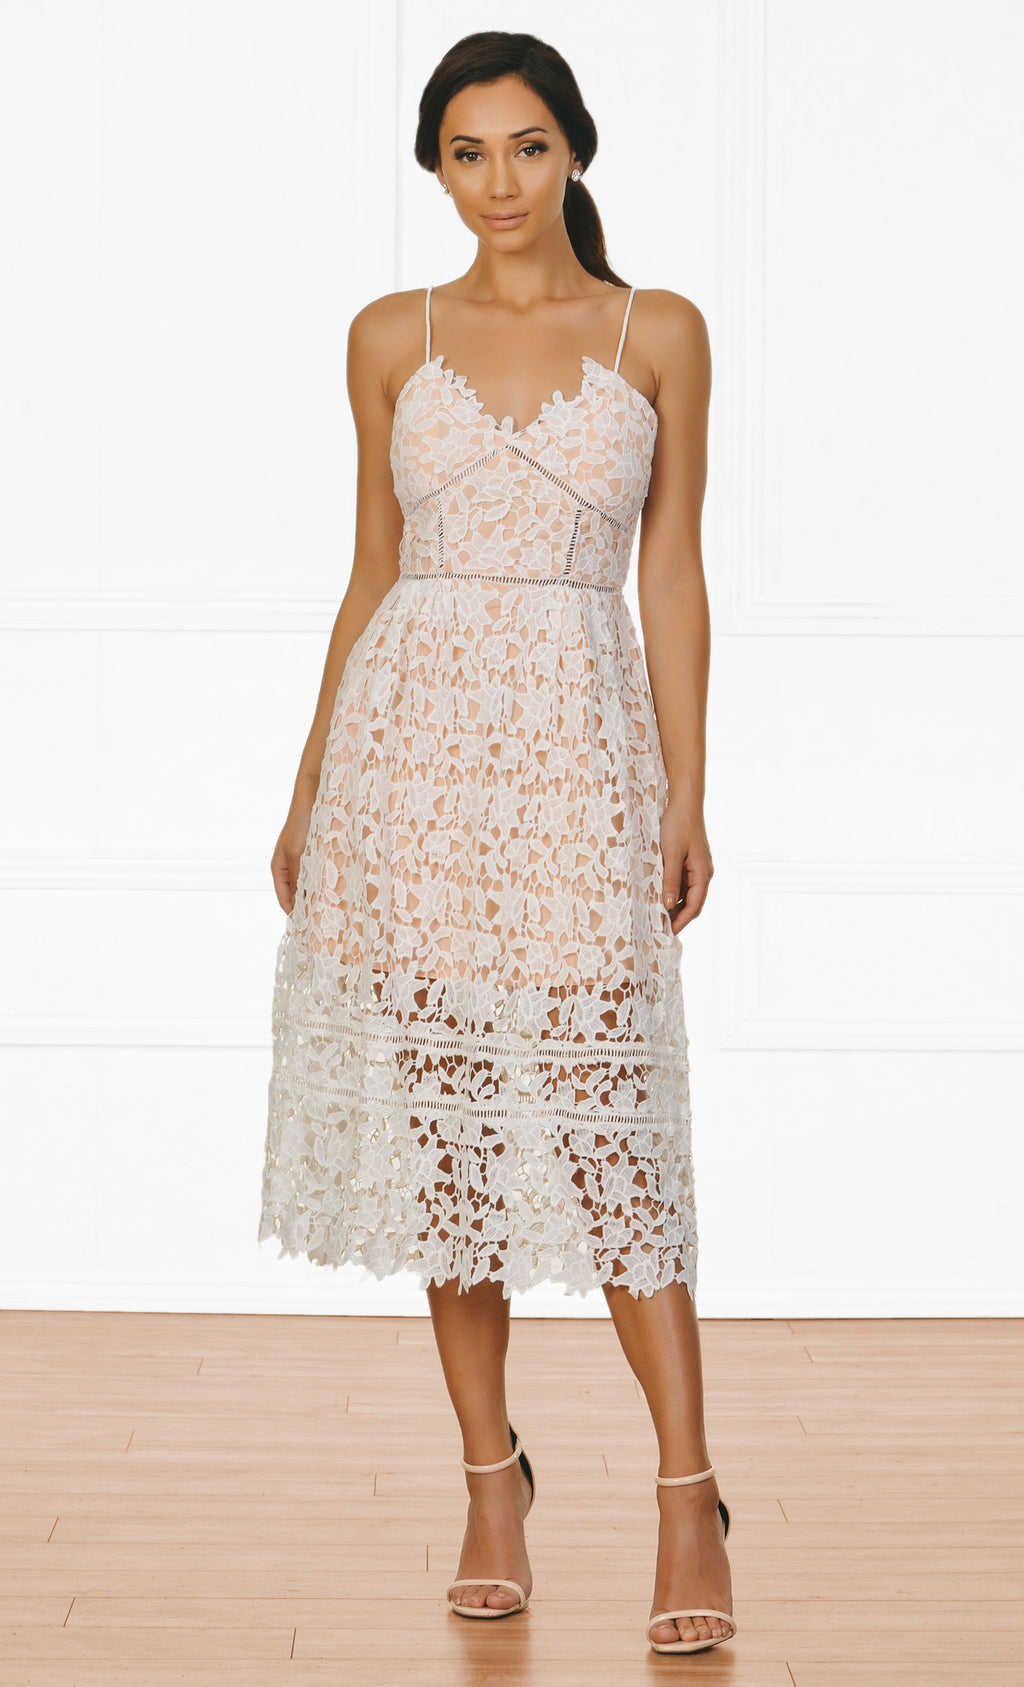 Indie XO Sweet Tea White Cut Out Guipure Lace Sleeveless Spaghetti Strap V Neck Midi Dress